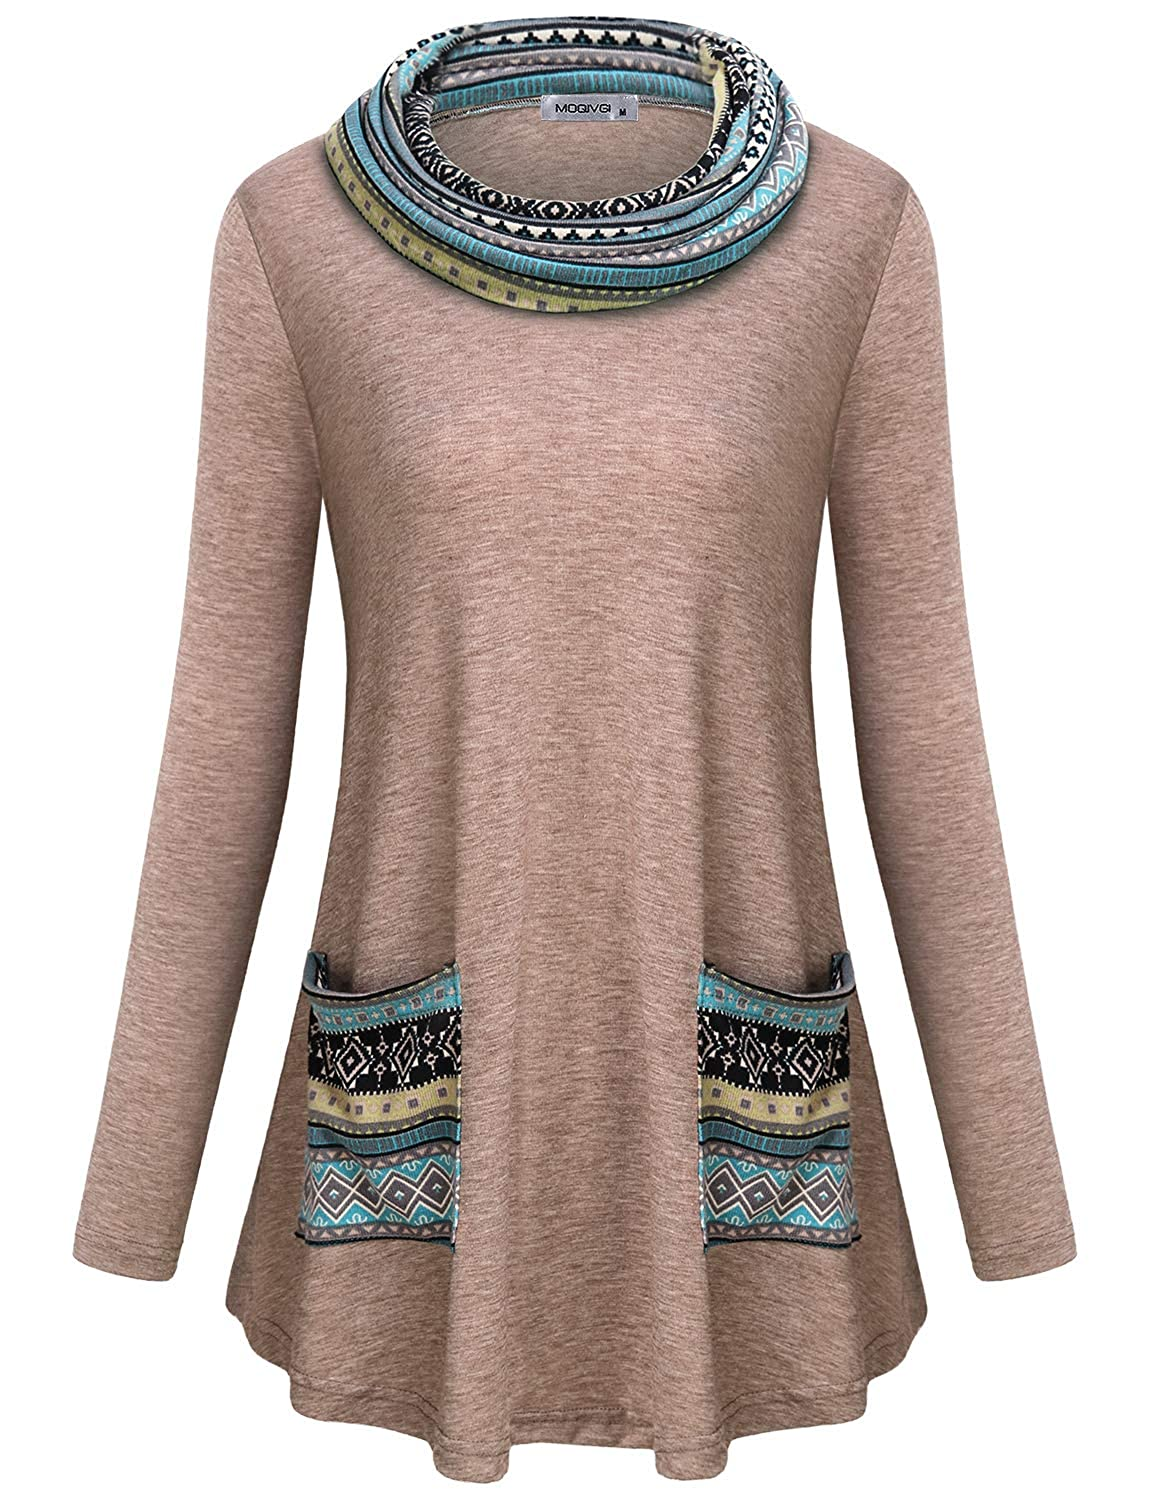 290c151eaec12 MOQIVGI Womens Long Sleeve Tunic Tops Cowl Neck Pullover Sweatshirts with  Pockets at Amazon Women s Clothing store